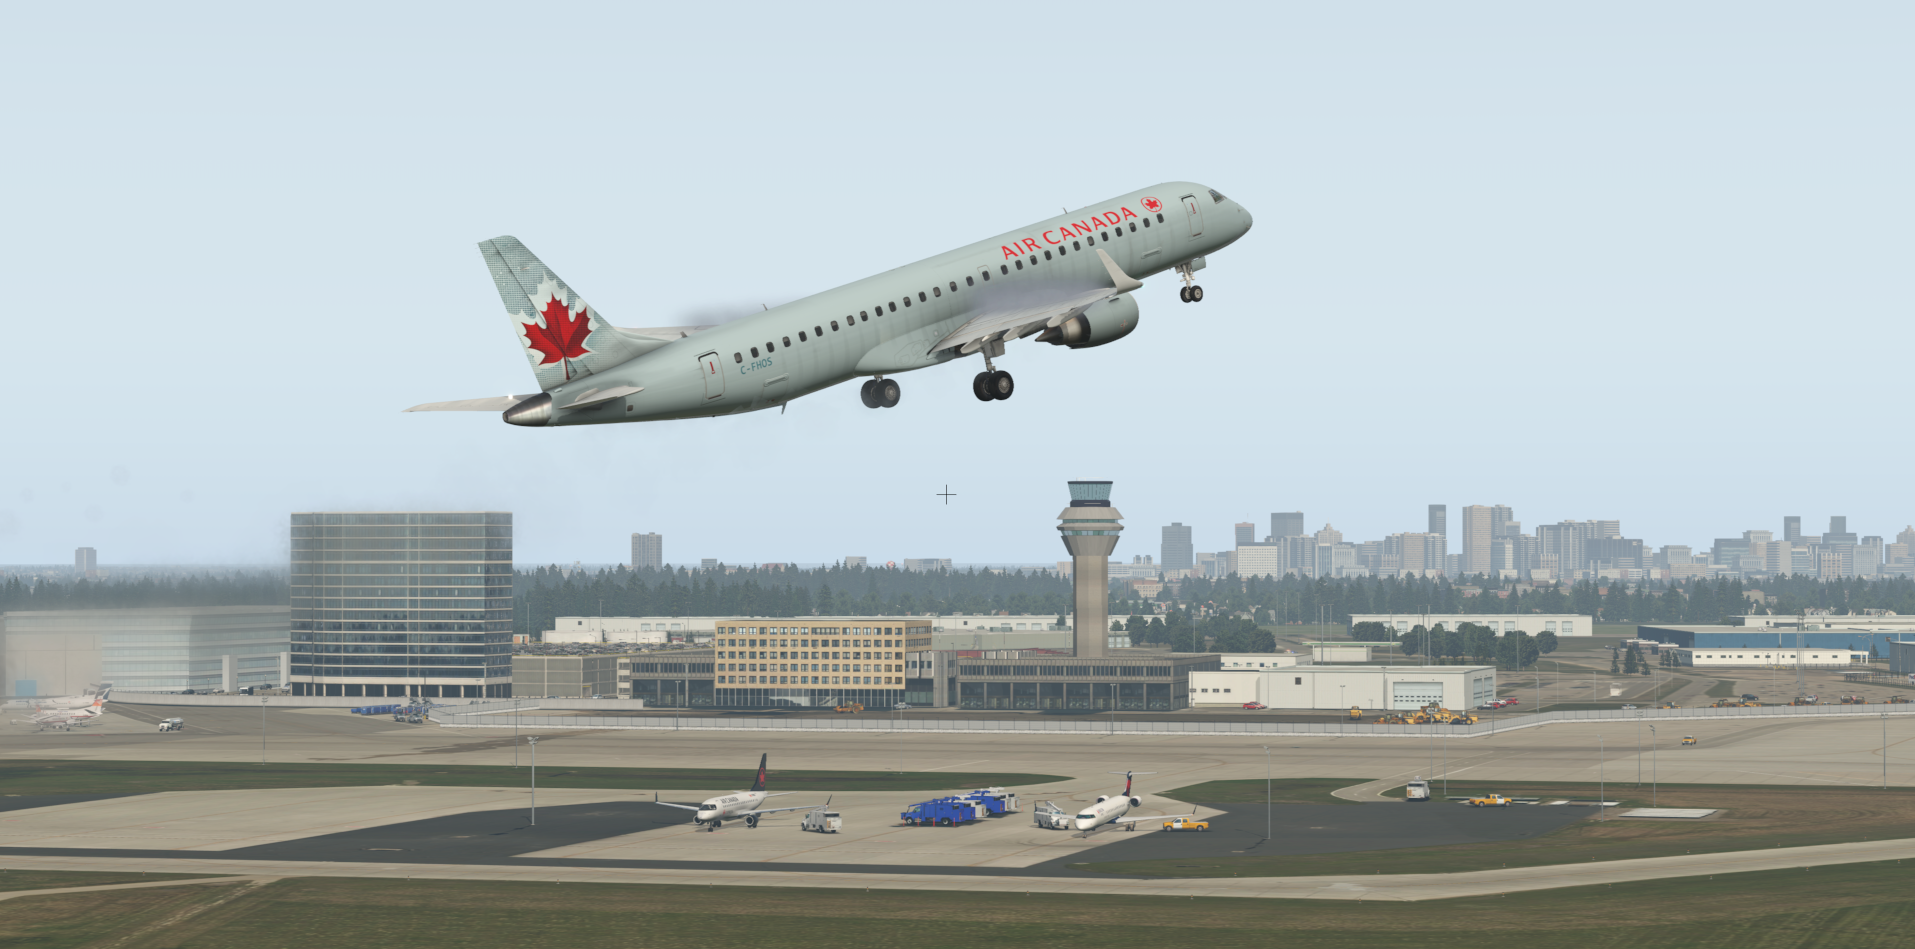 X-Crafts Embraer E-175/195 SimVRLabs Implementation - Announcements